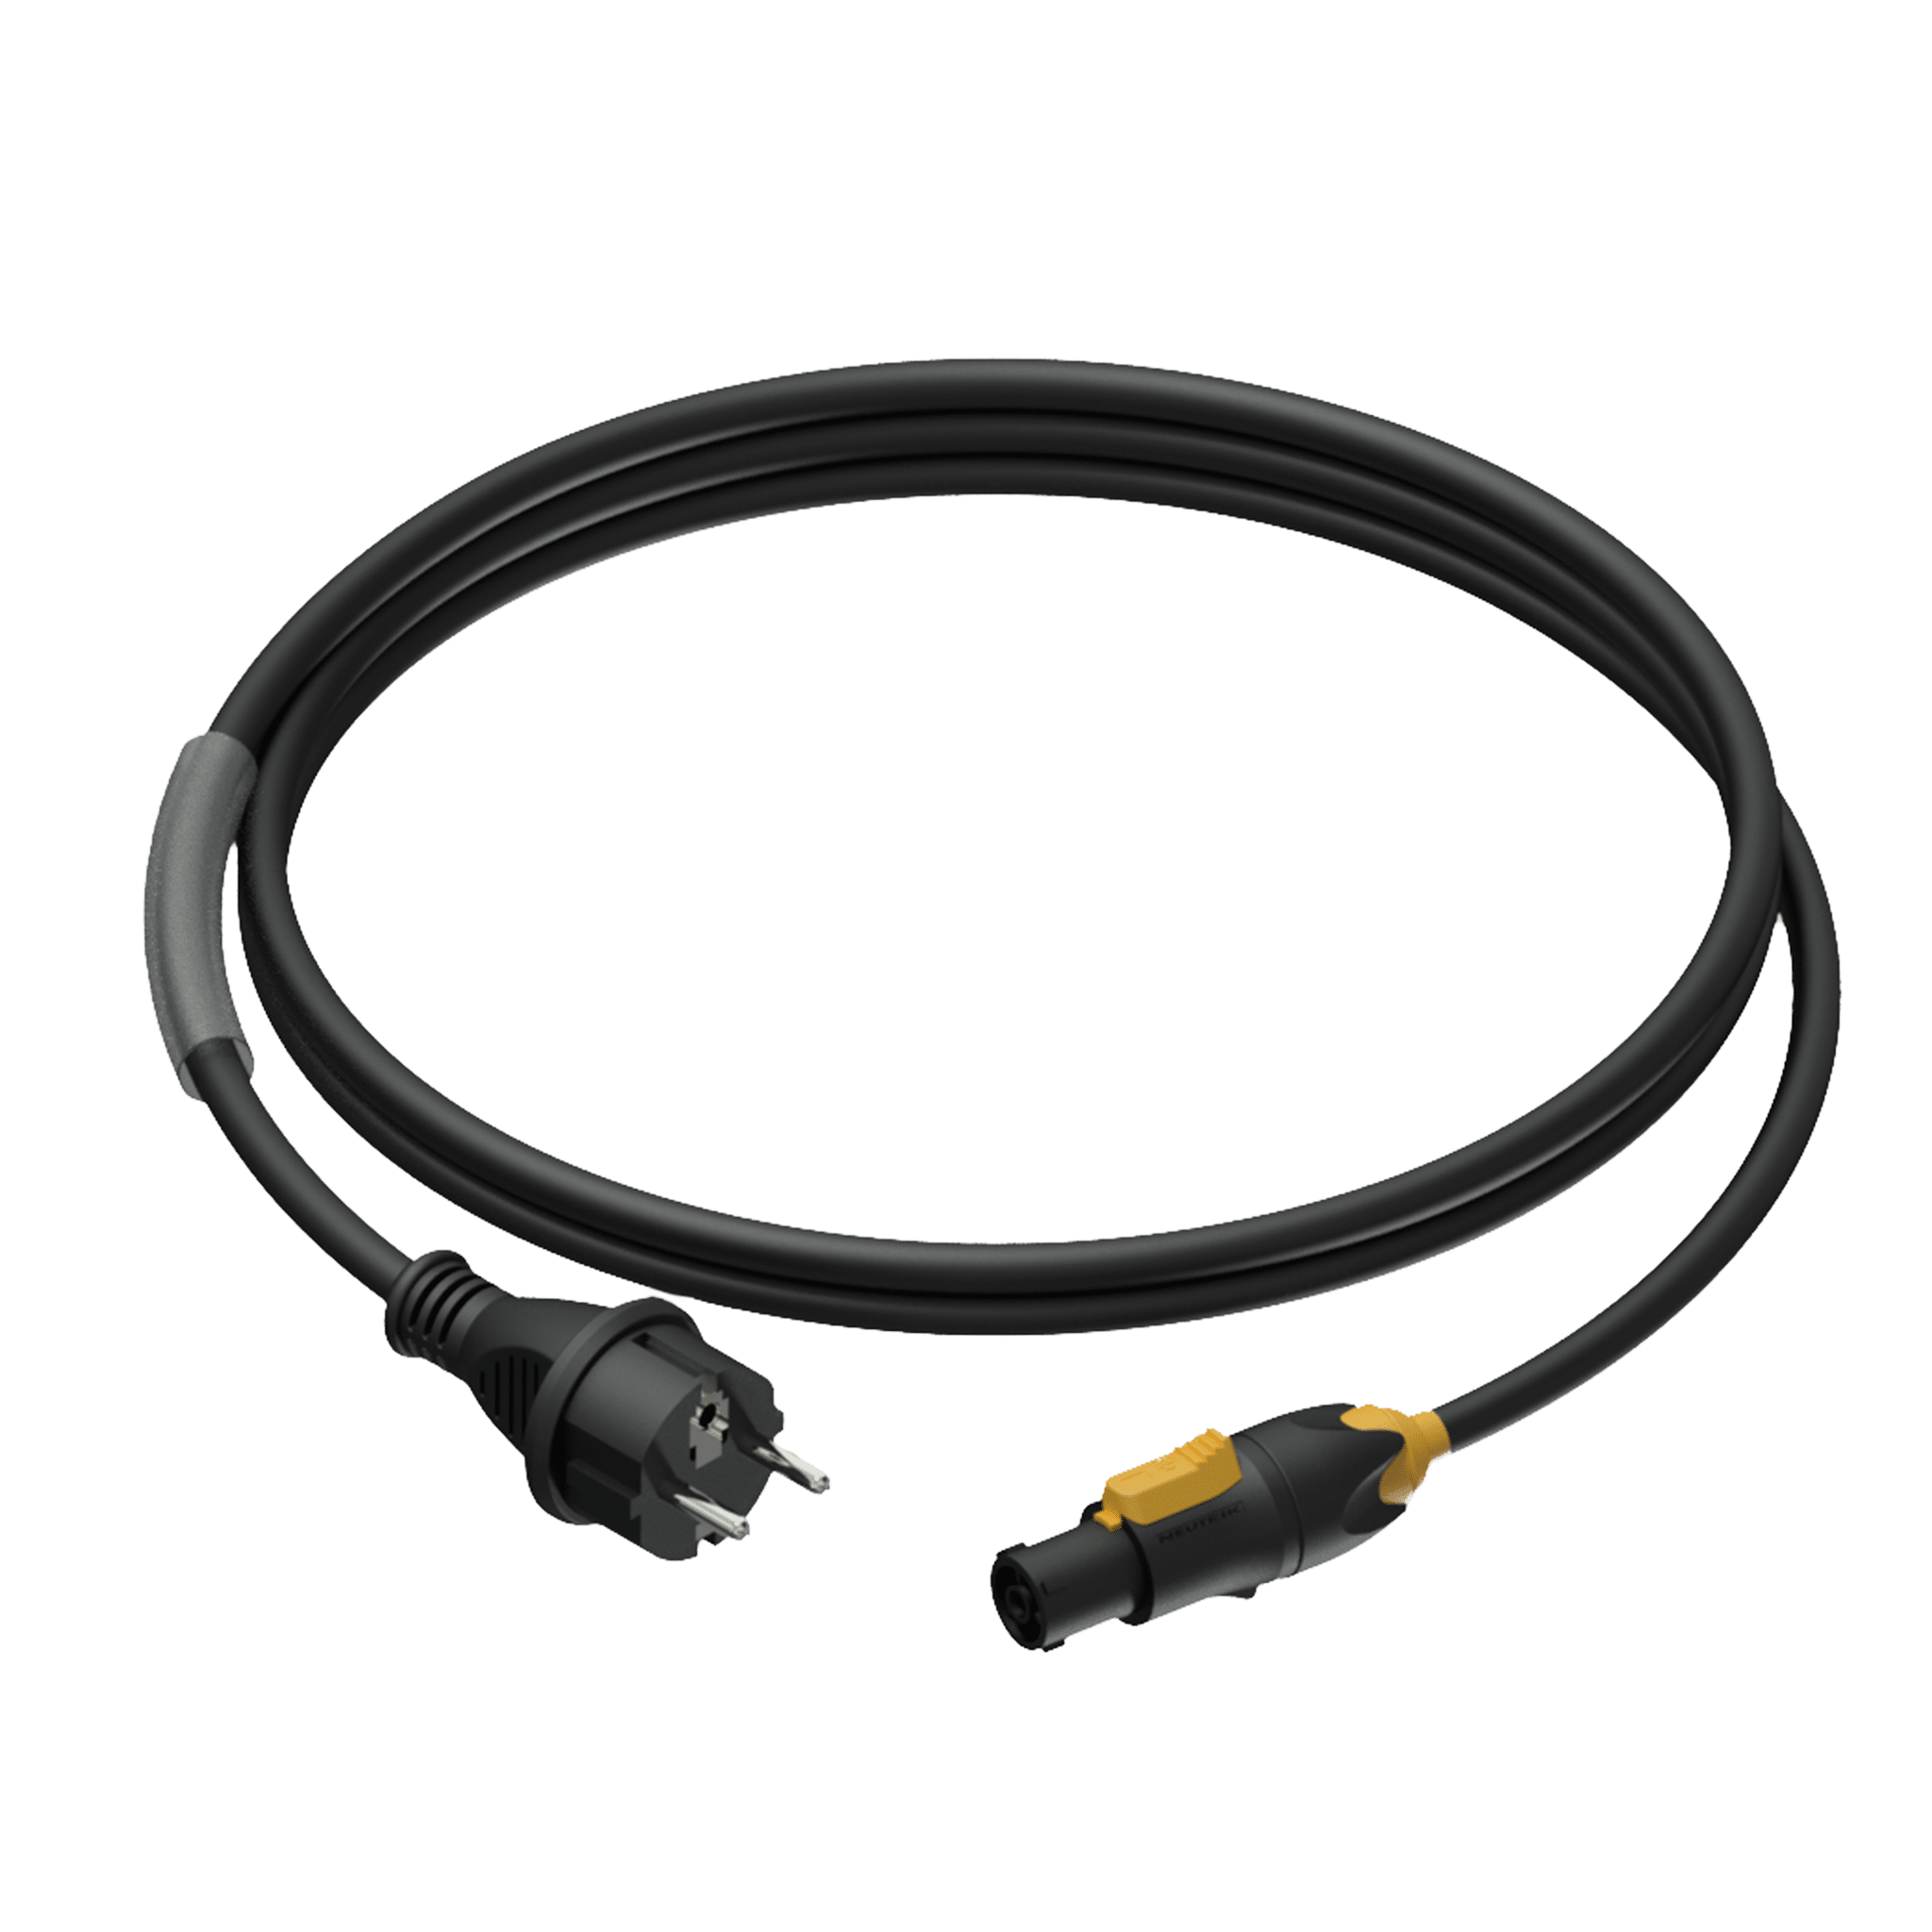 PRP433 - Power cable - schuko male - powerCON TRUE1 female - 3 x 1.5 mm²